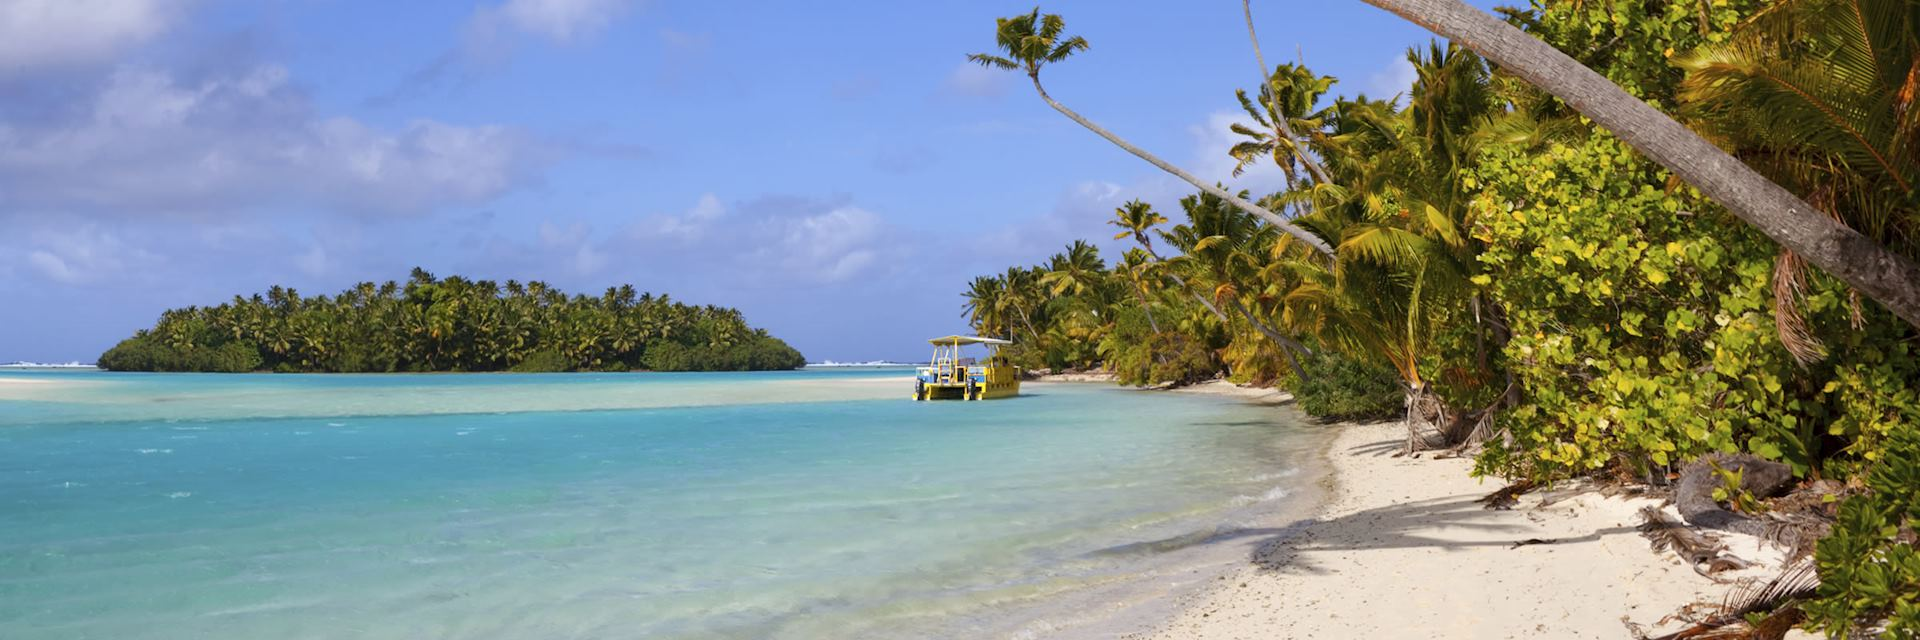 The island of Aitutaki